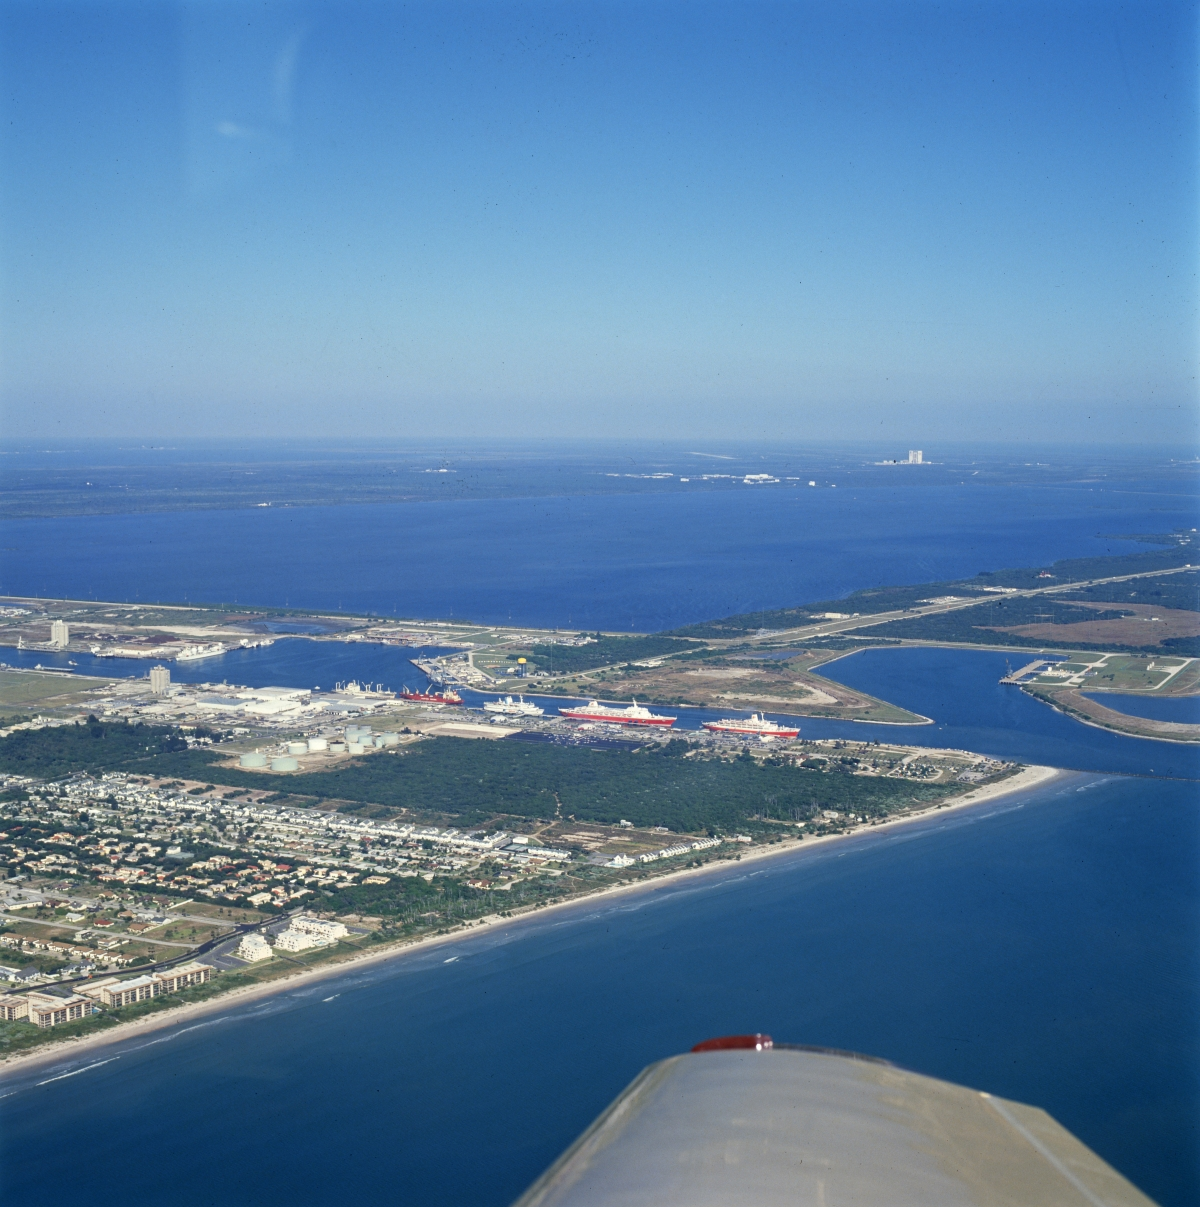 Aerial view looking northwest at Port Canaveral.